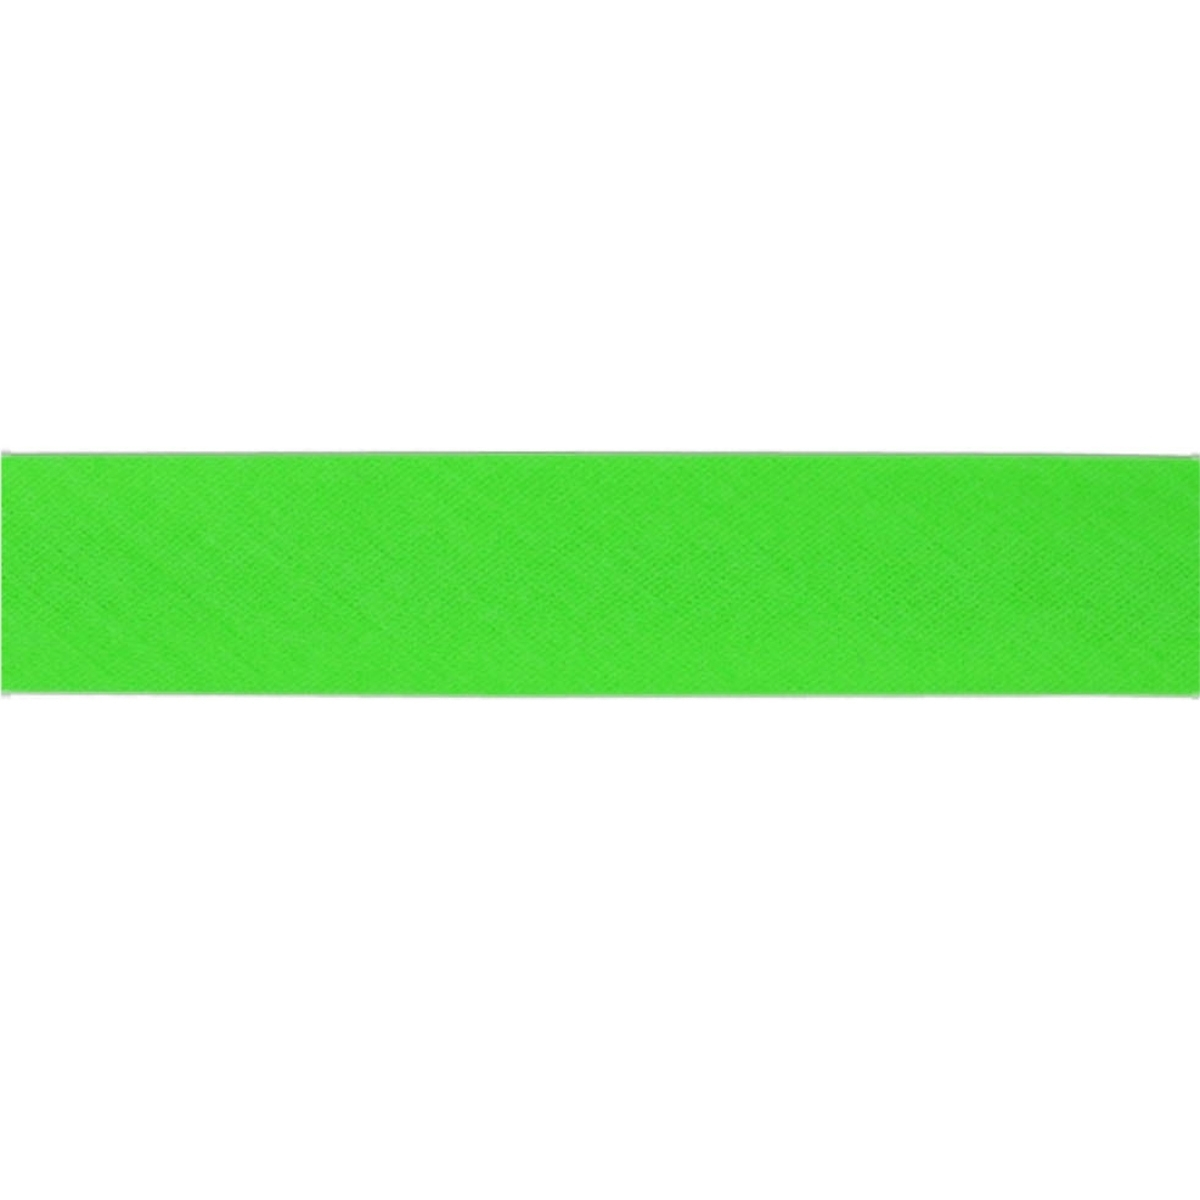 bias tape NEON, green | 1774-202 | grün